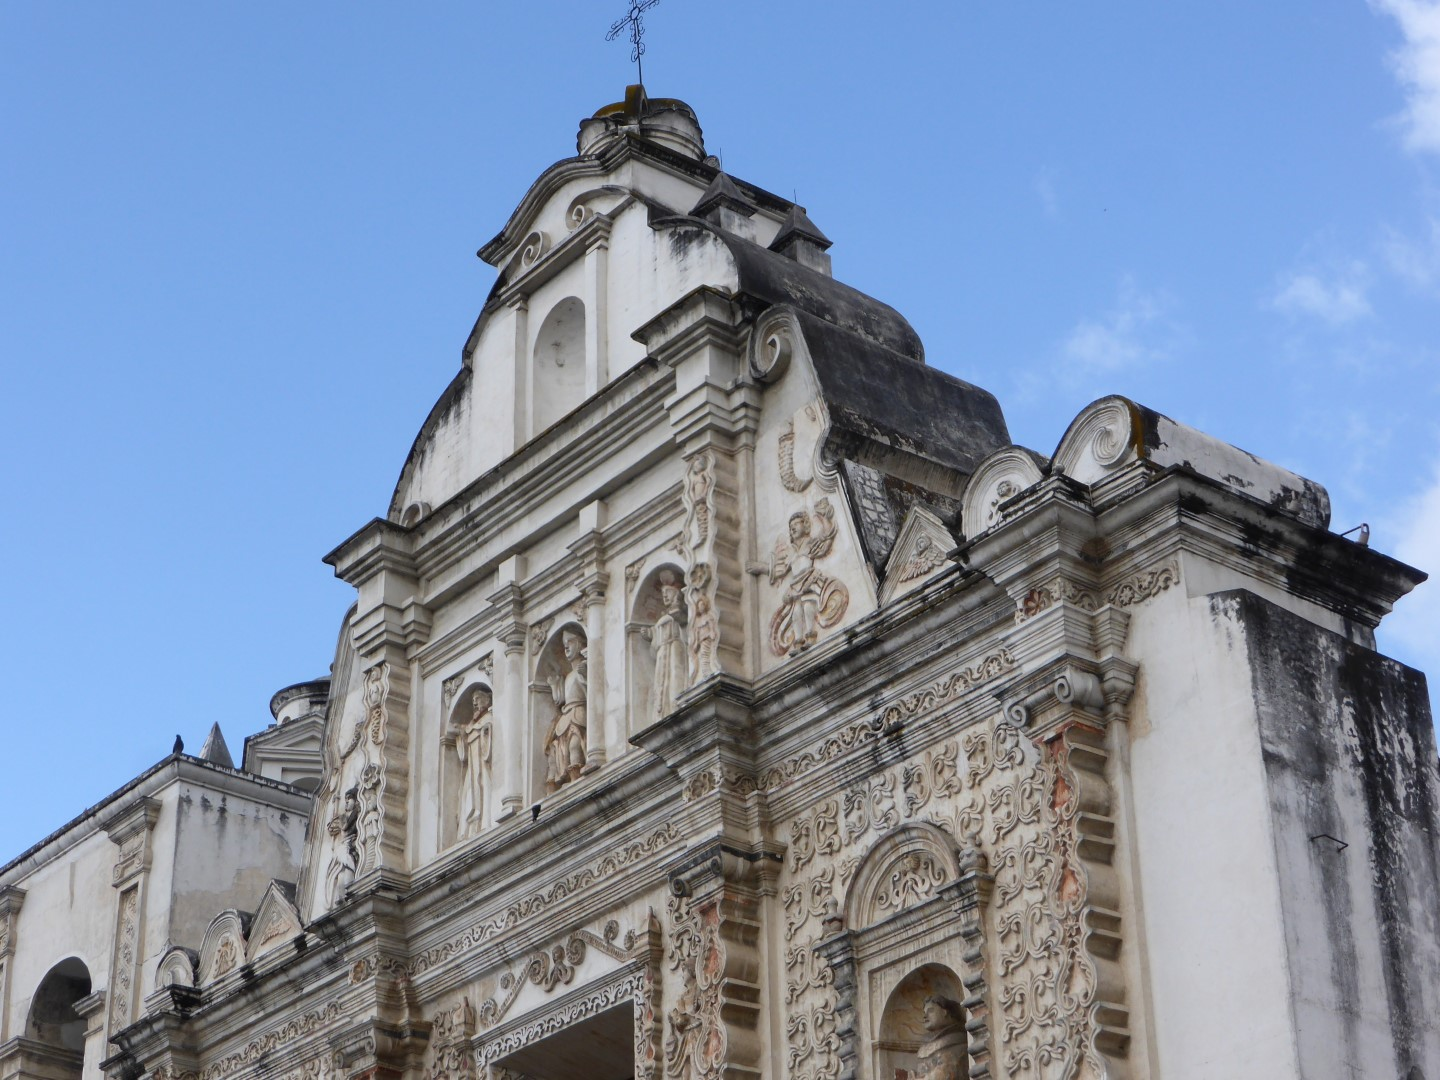 Church tower in Quetzaltenango, Guatemala